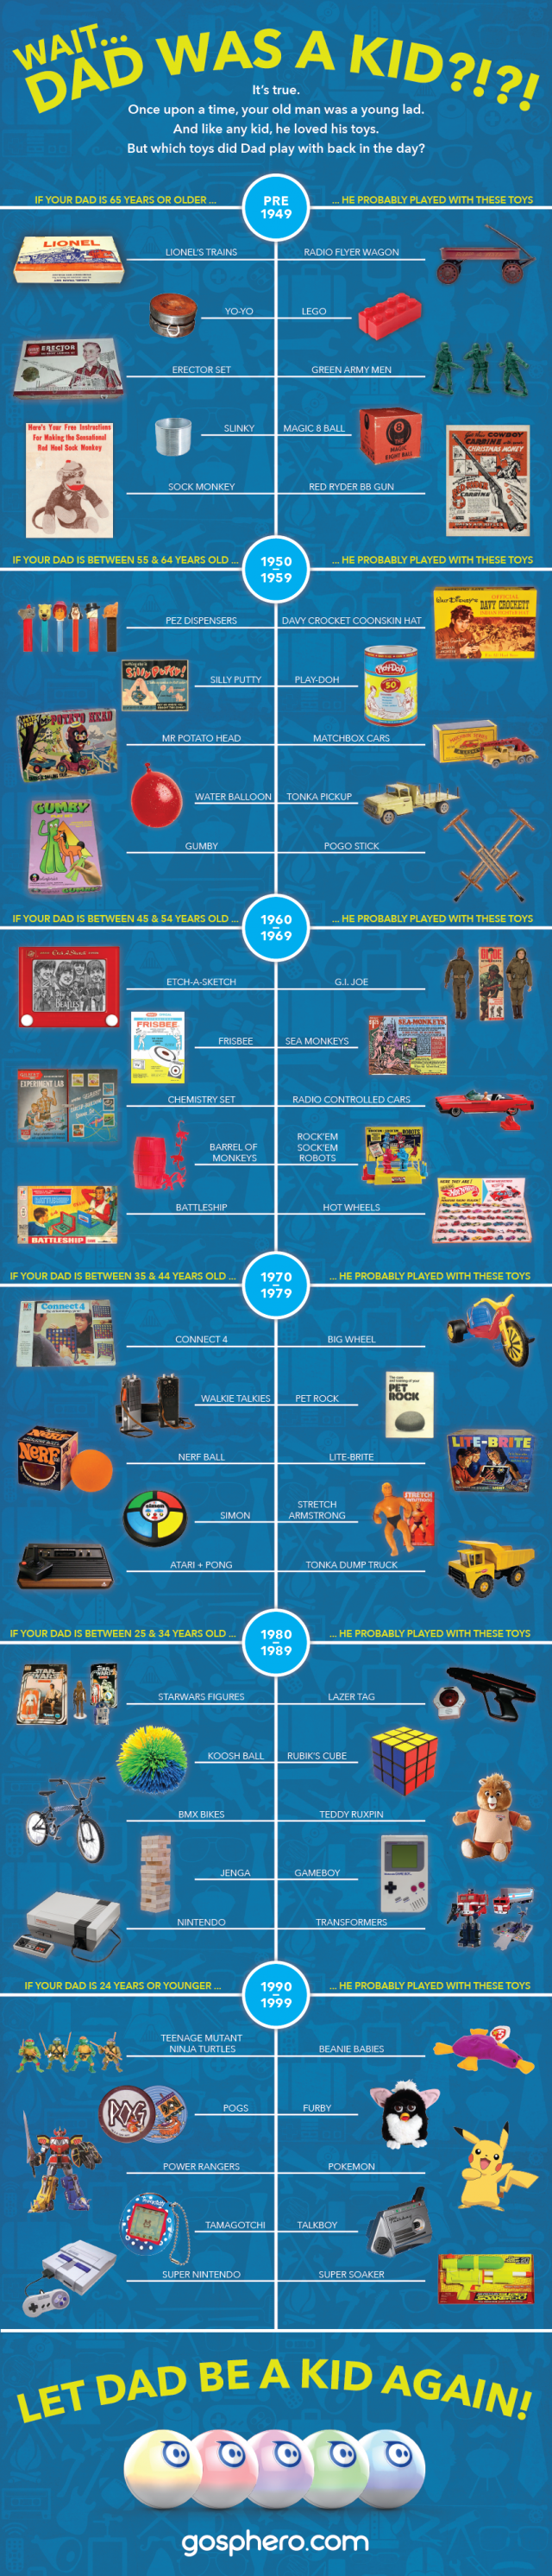 history-of-your-dad-toys